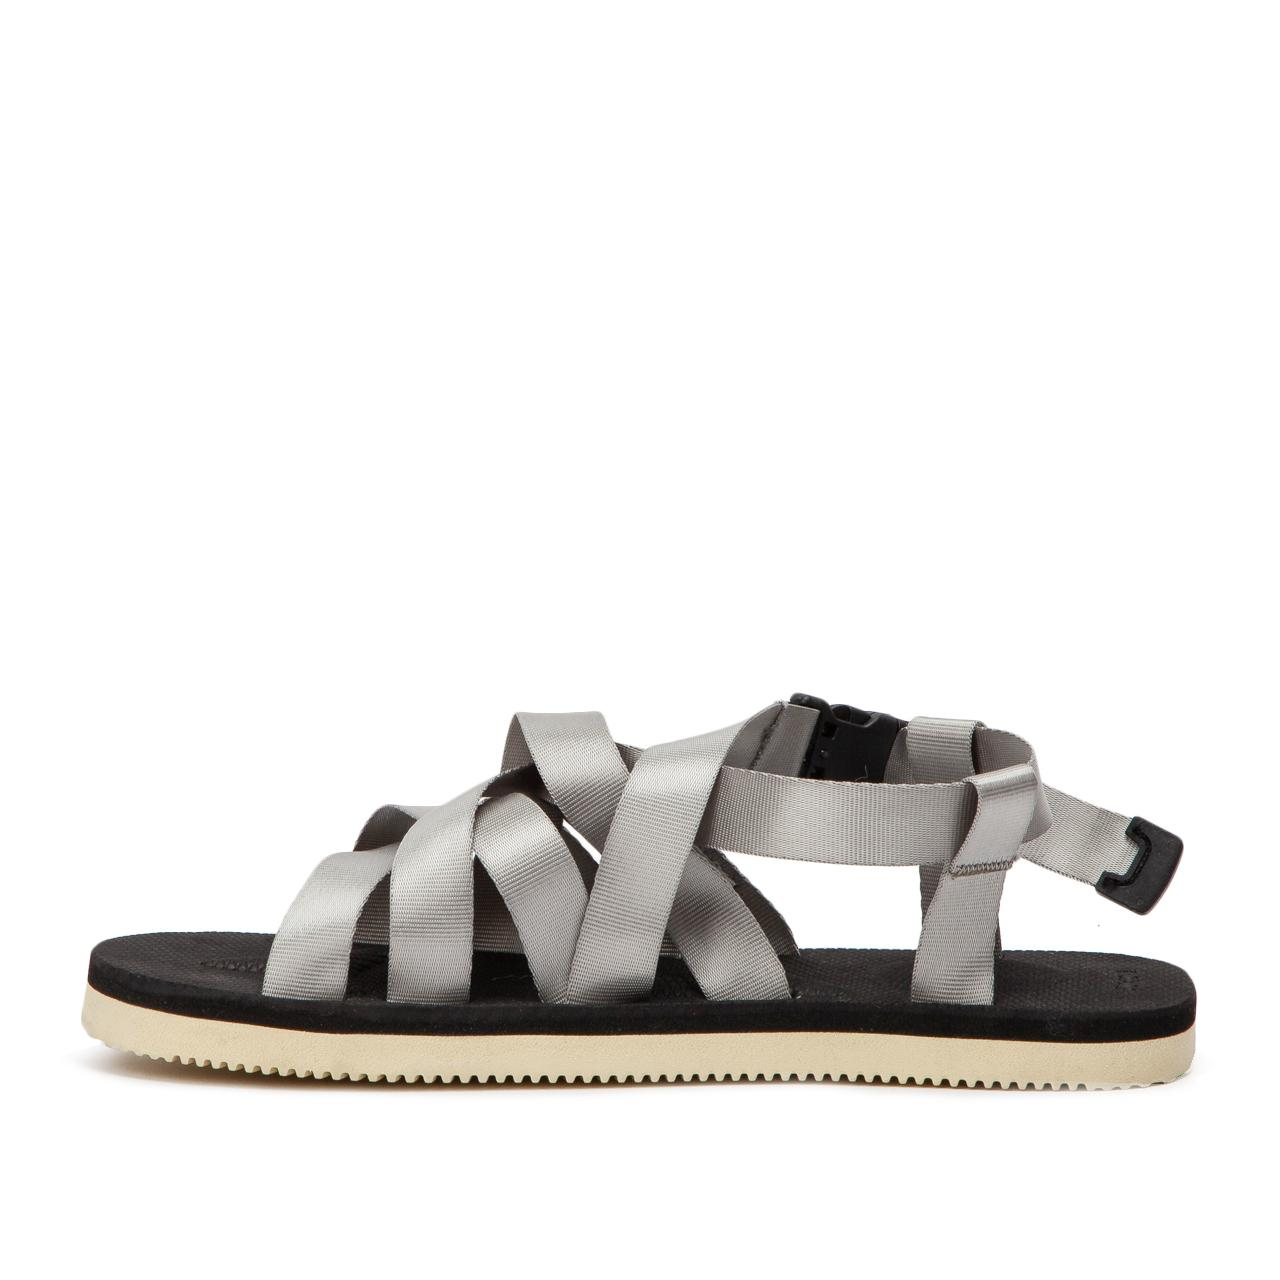 e6af7577a32 Suicoke - Gray Sandals Sama for Men - Lyst. View fullscreen